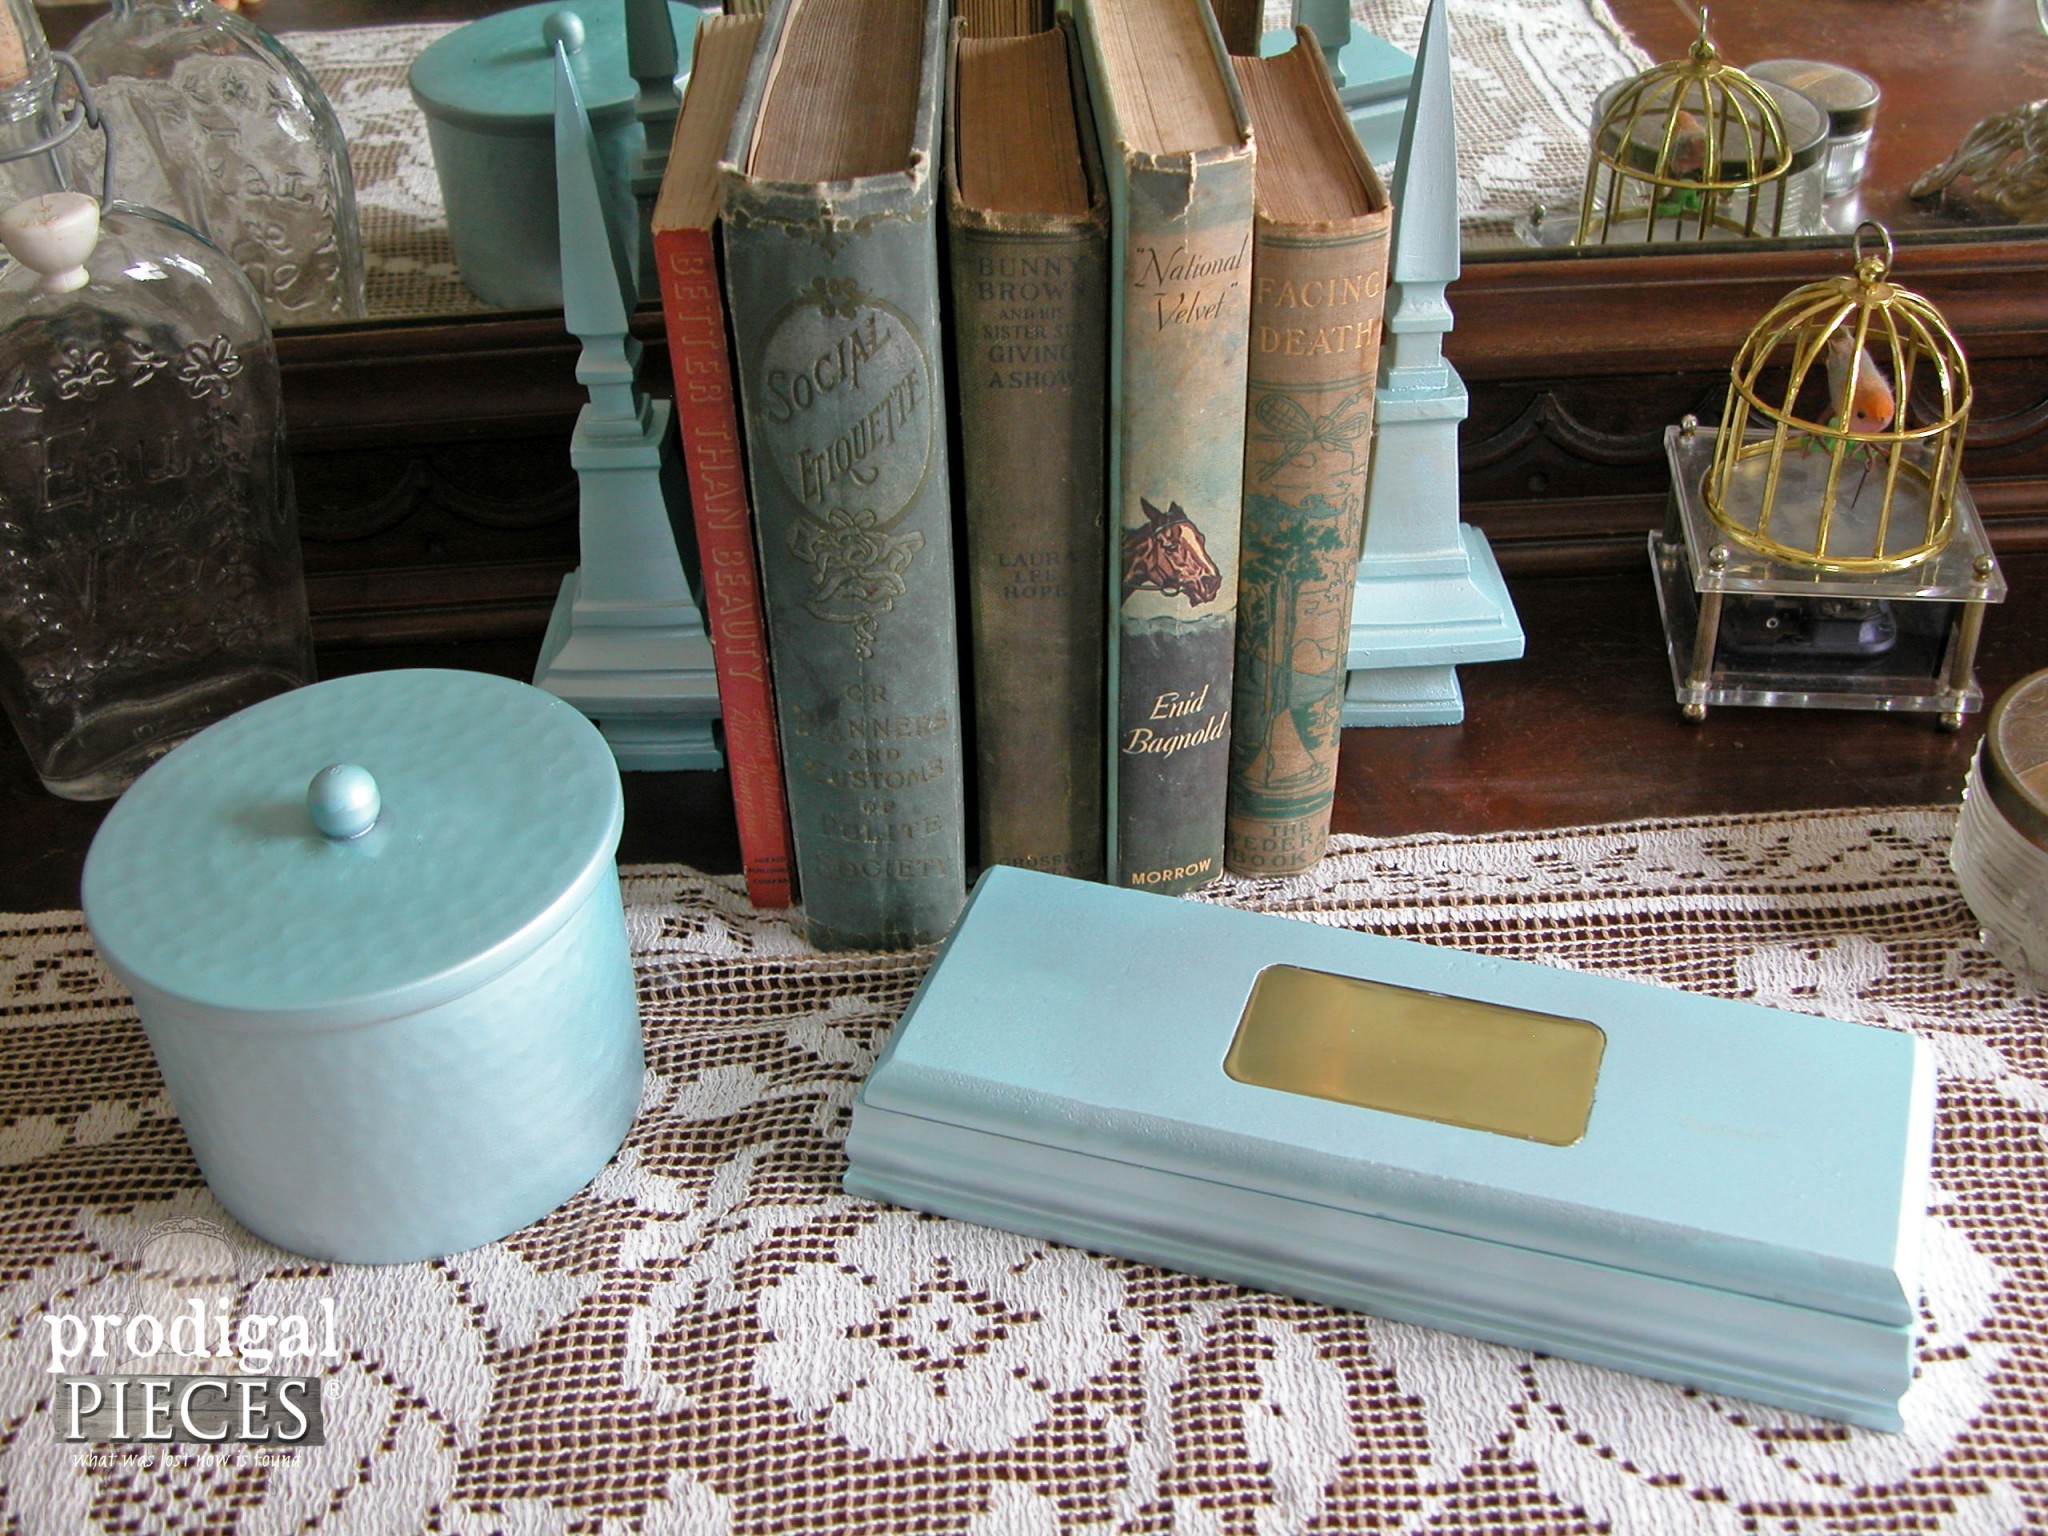 Aqua Blue Vanity Set from Thrifted Finds by Prodigal Pieces | www.prodigalpieces.com